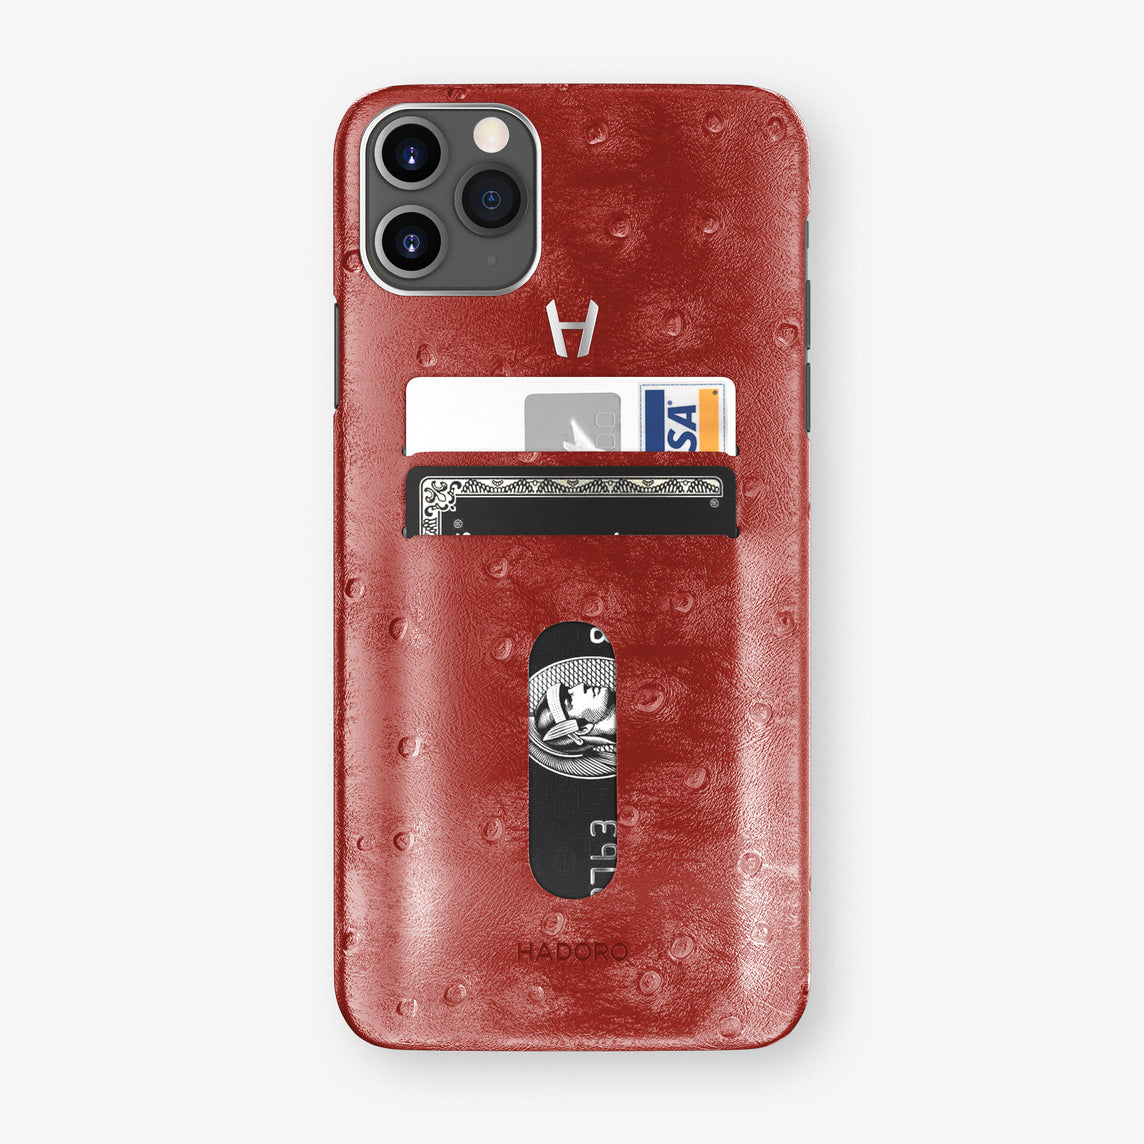 Ostrich Card Holder Case iPhone 11 Pro Max | Red - Stainless Steel